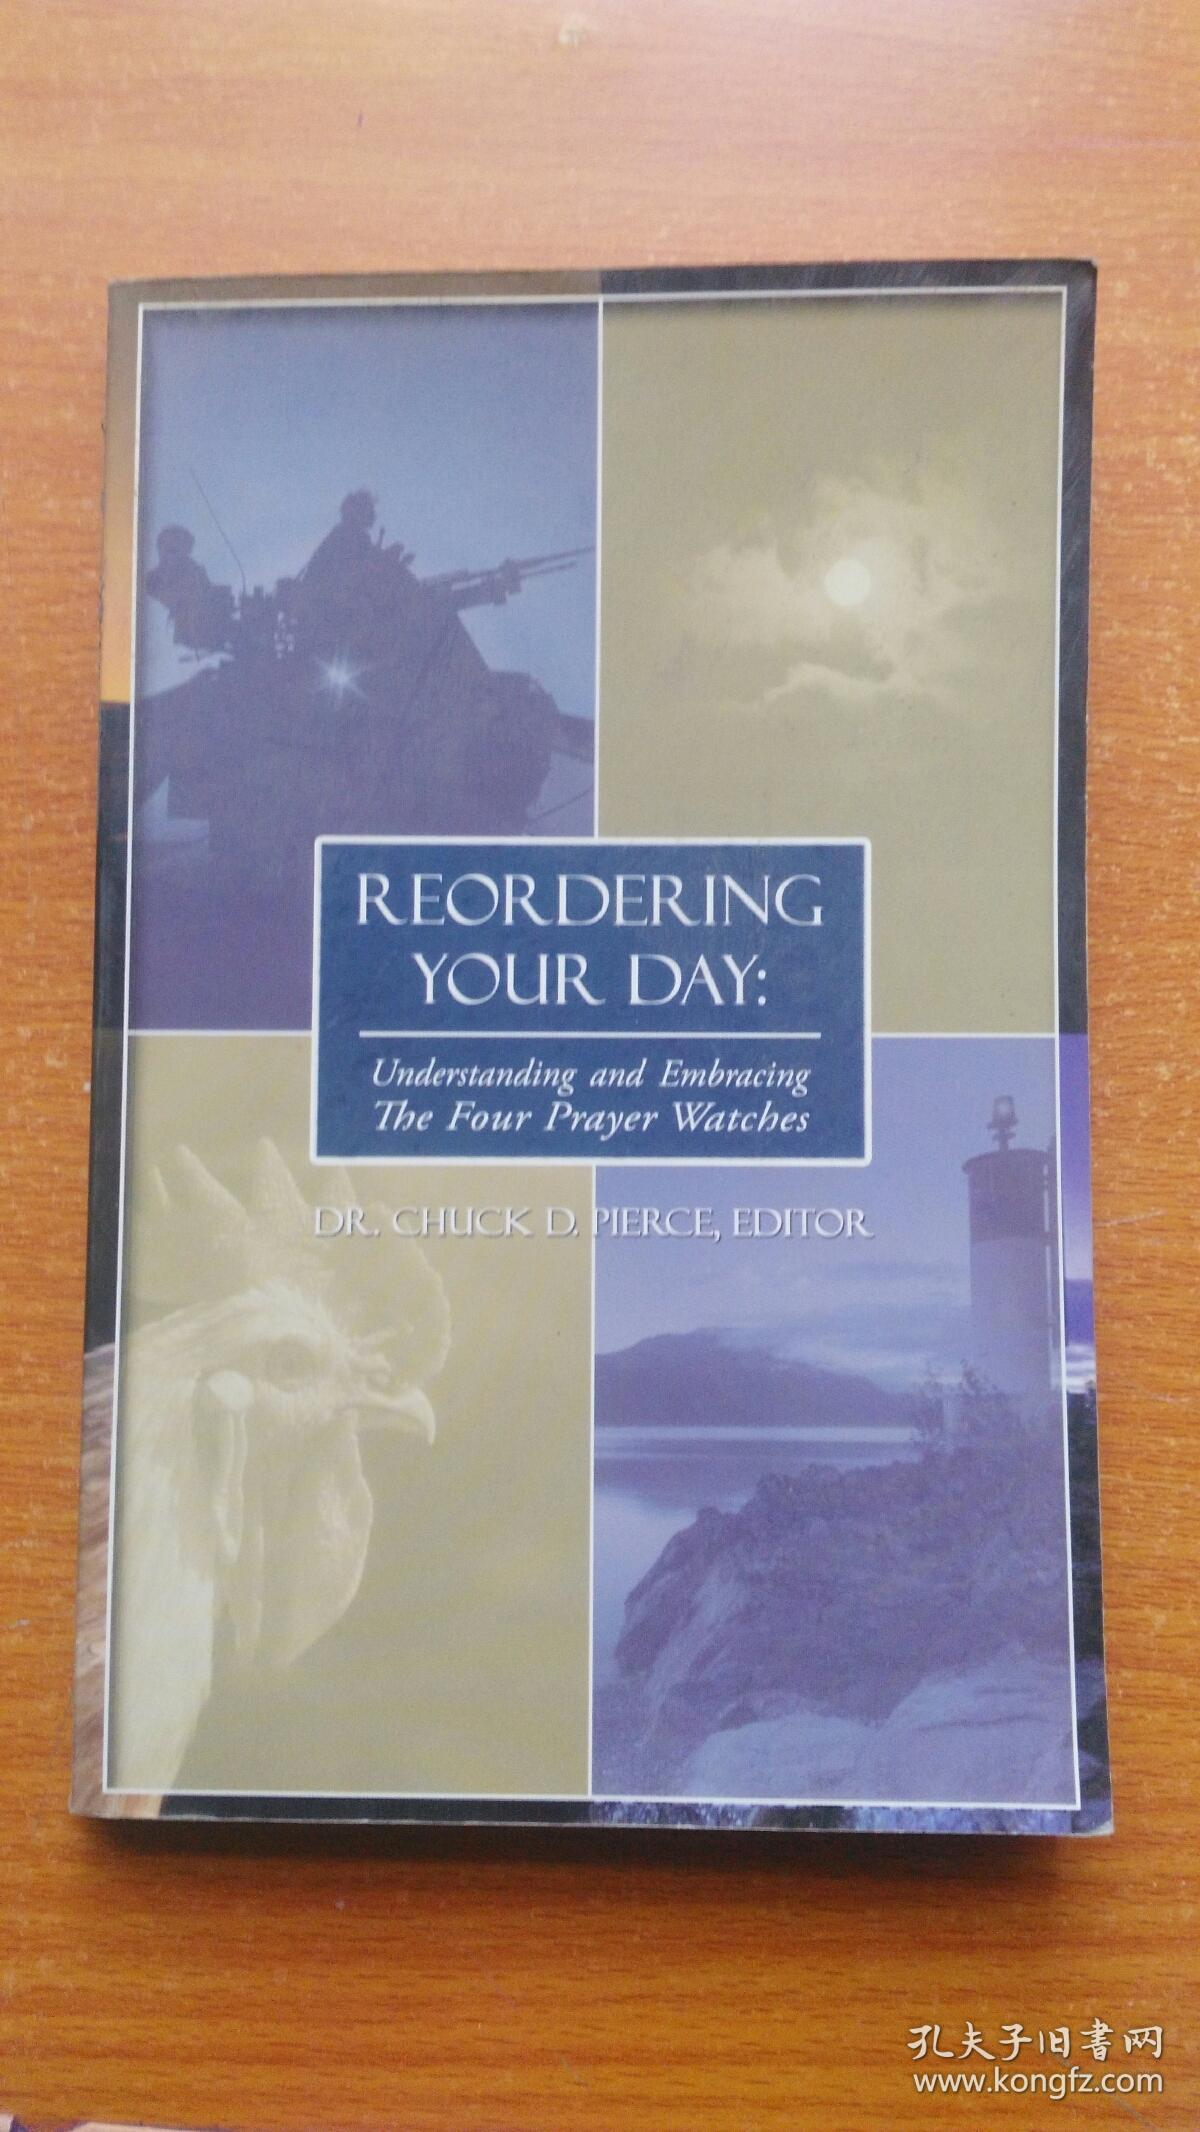 Reordering Your Day!: Understanding and Embracing the Four Prayer Watches